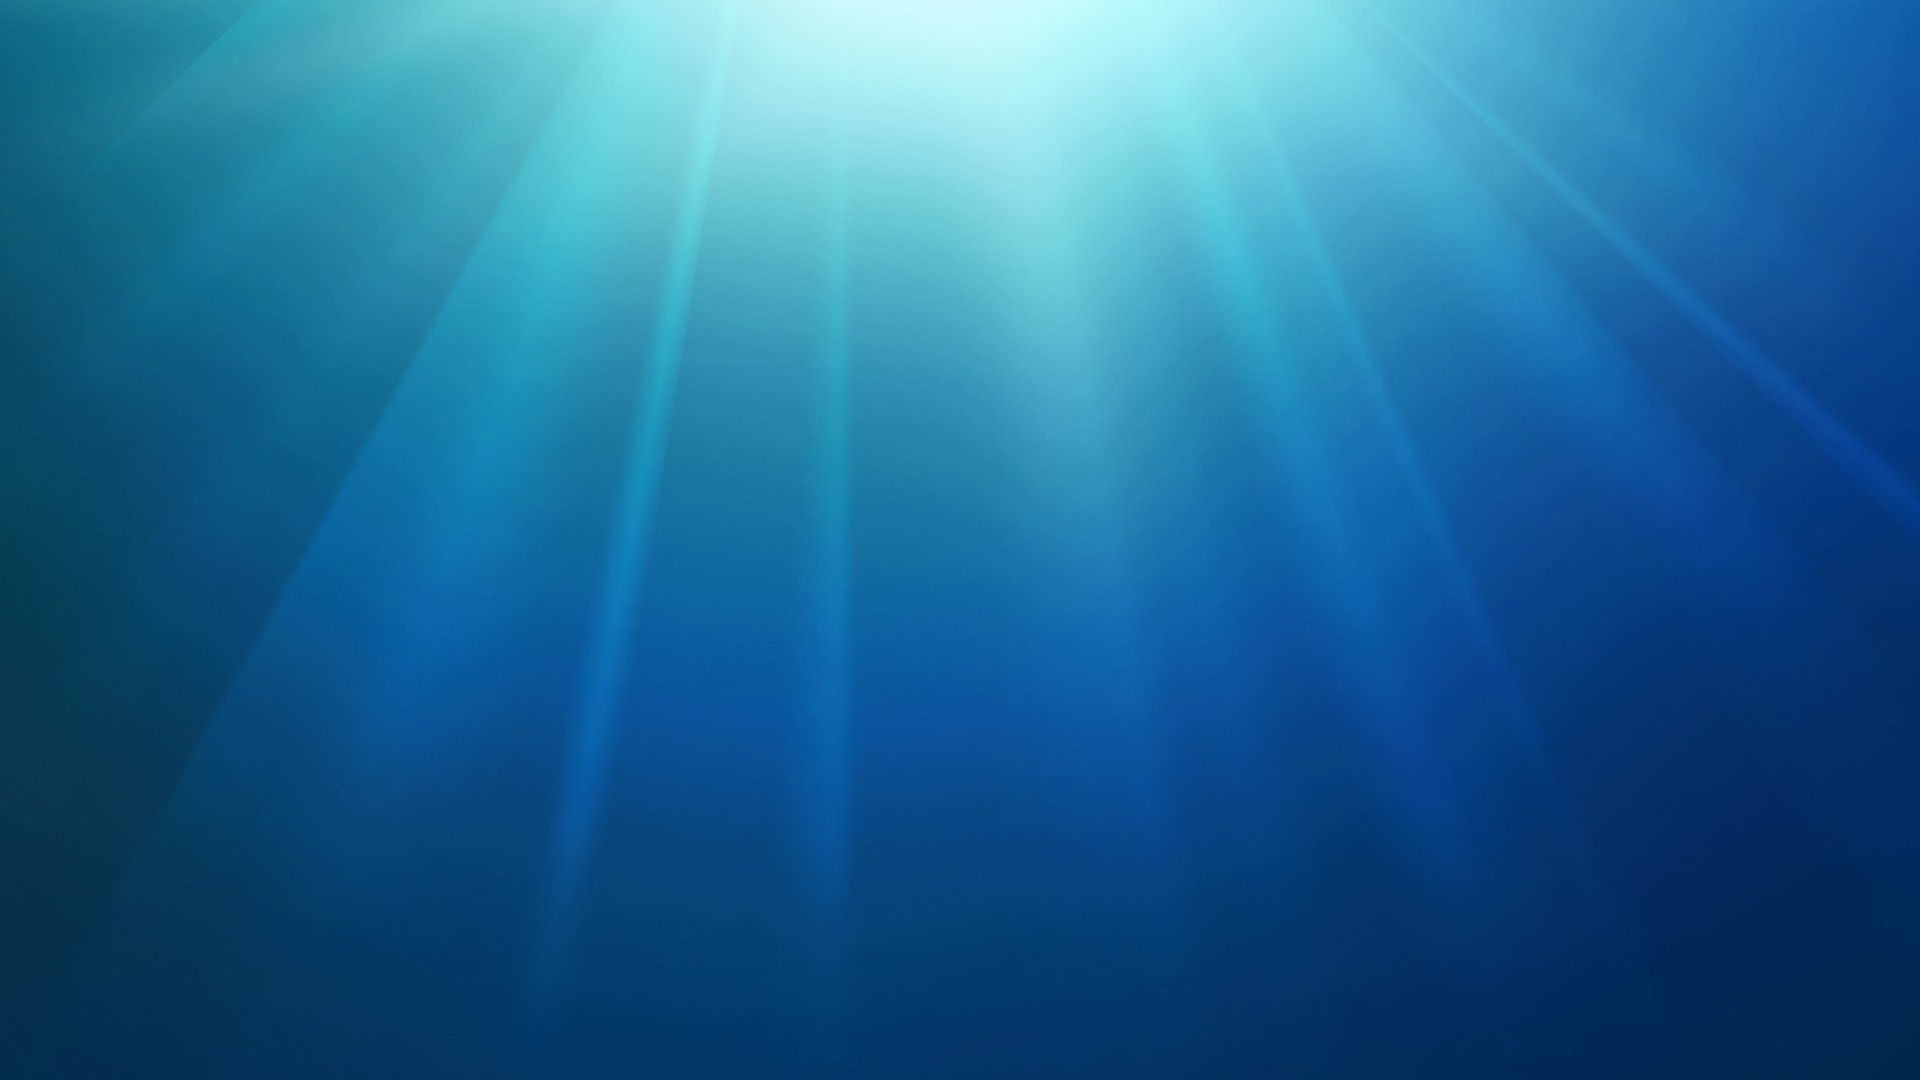 Rays of light under water wallpaper Wallpaper Wide HD 1920x1080